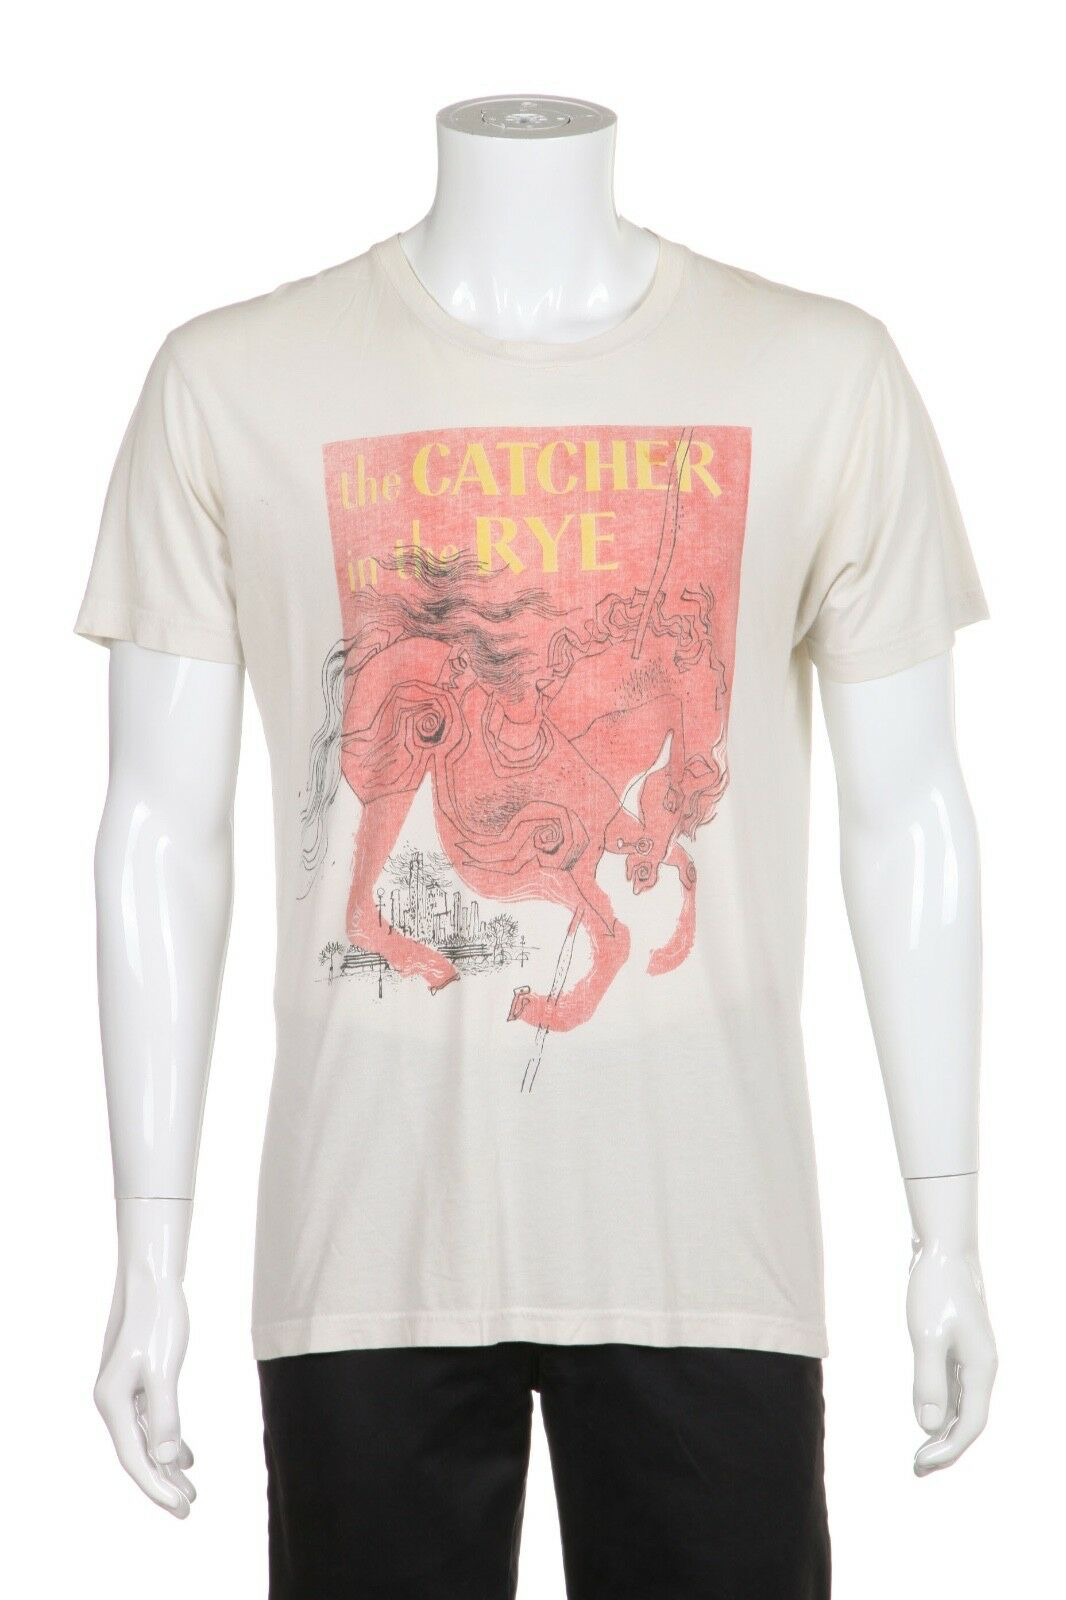 OUT OF PRINT CLOTHING The Catcher in the Rye Graphic Tee